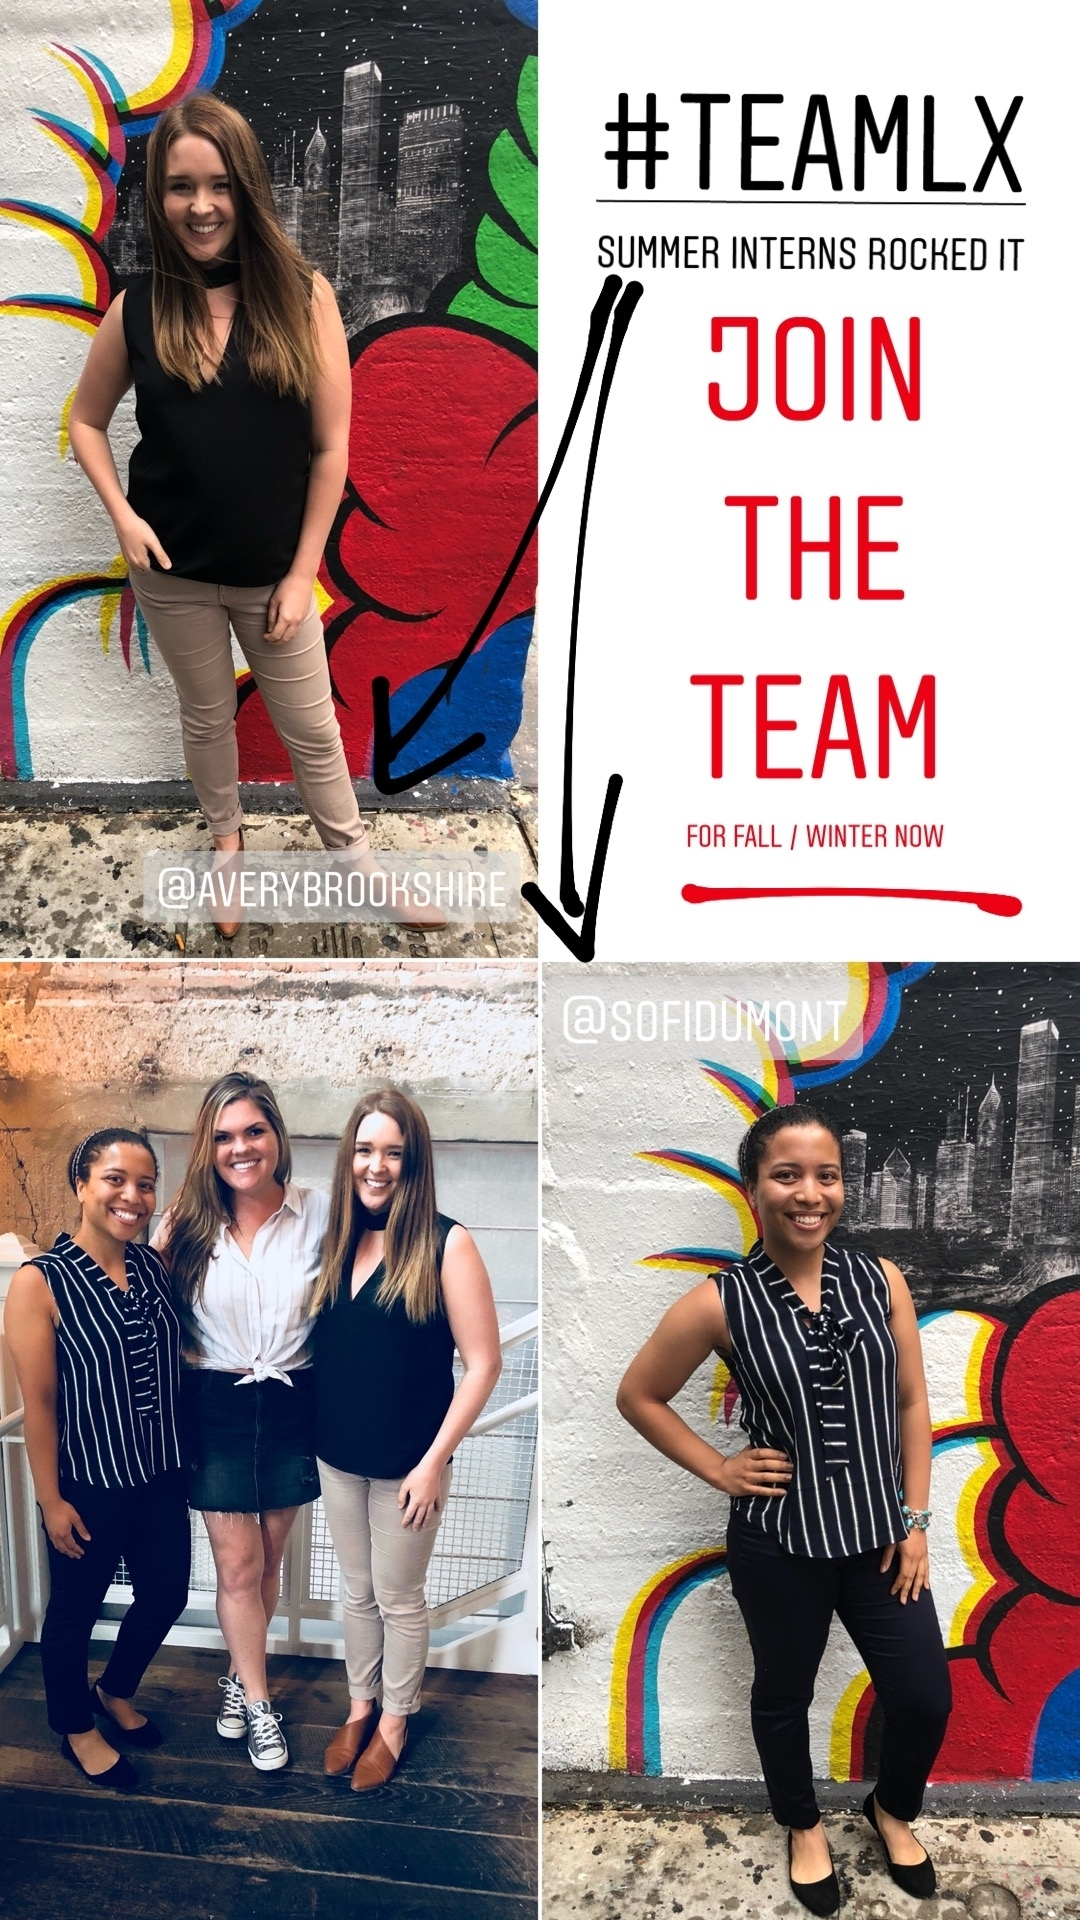 Our incredible Summer 2018 Interns with Founder Chantel